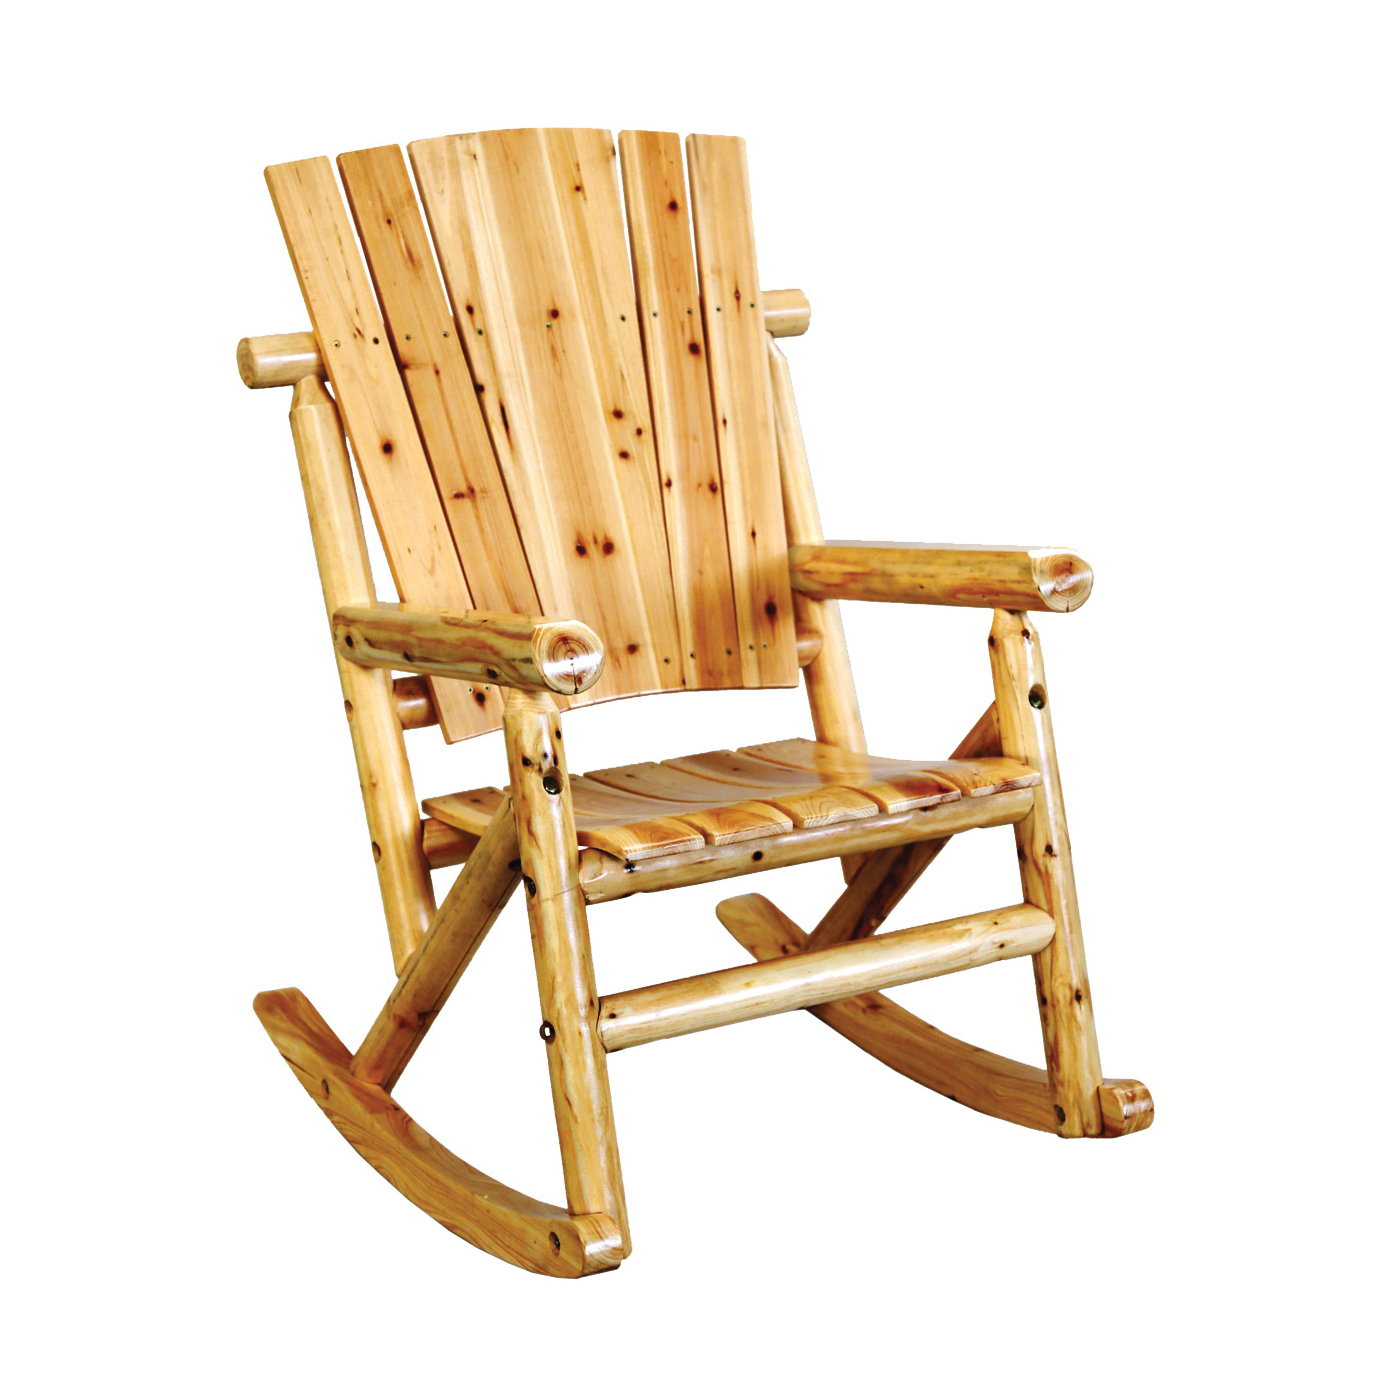 Picture of DURAFLAME TX 95100 Aspen Single Rocking Chair, 29-1/2 in OAW, 44-1/2 in OAD, 35.43 in OAH, Wood